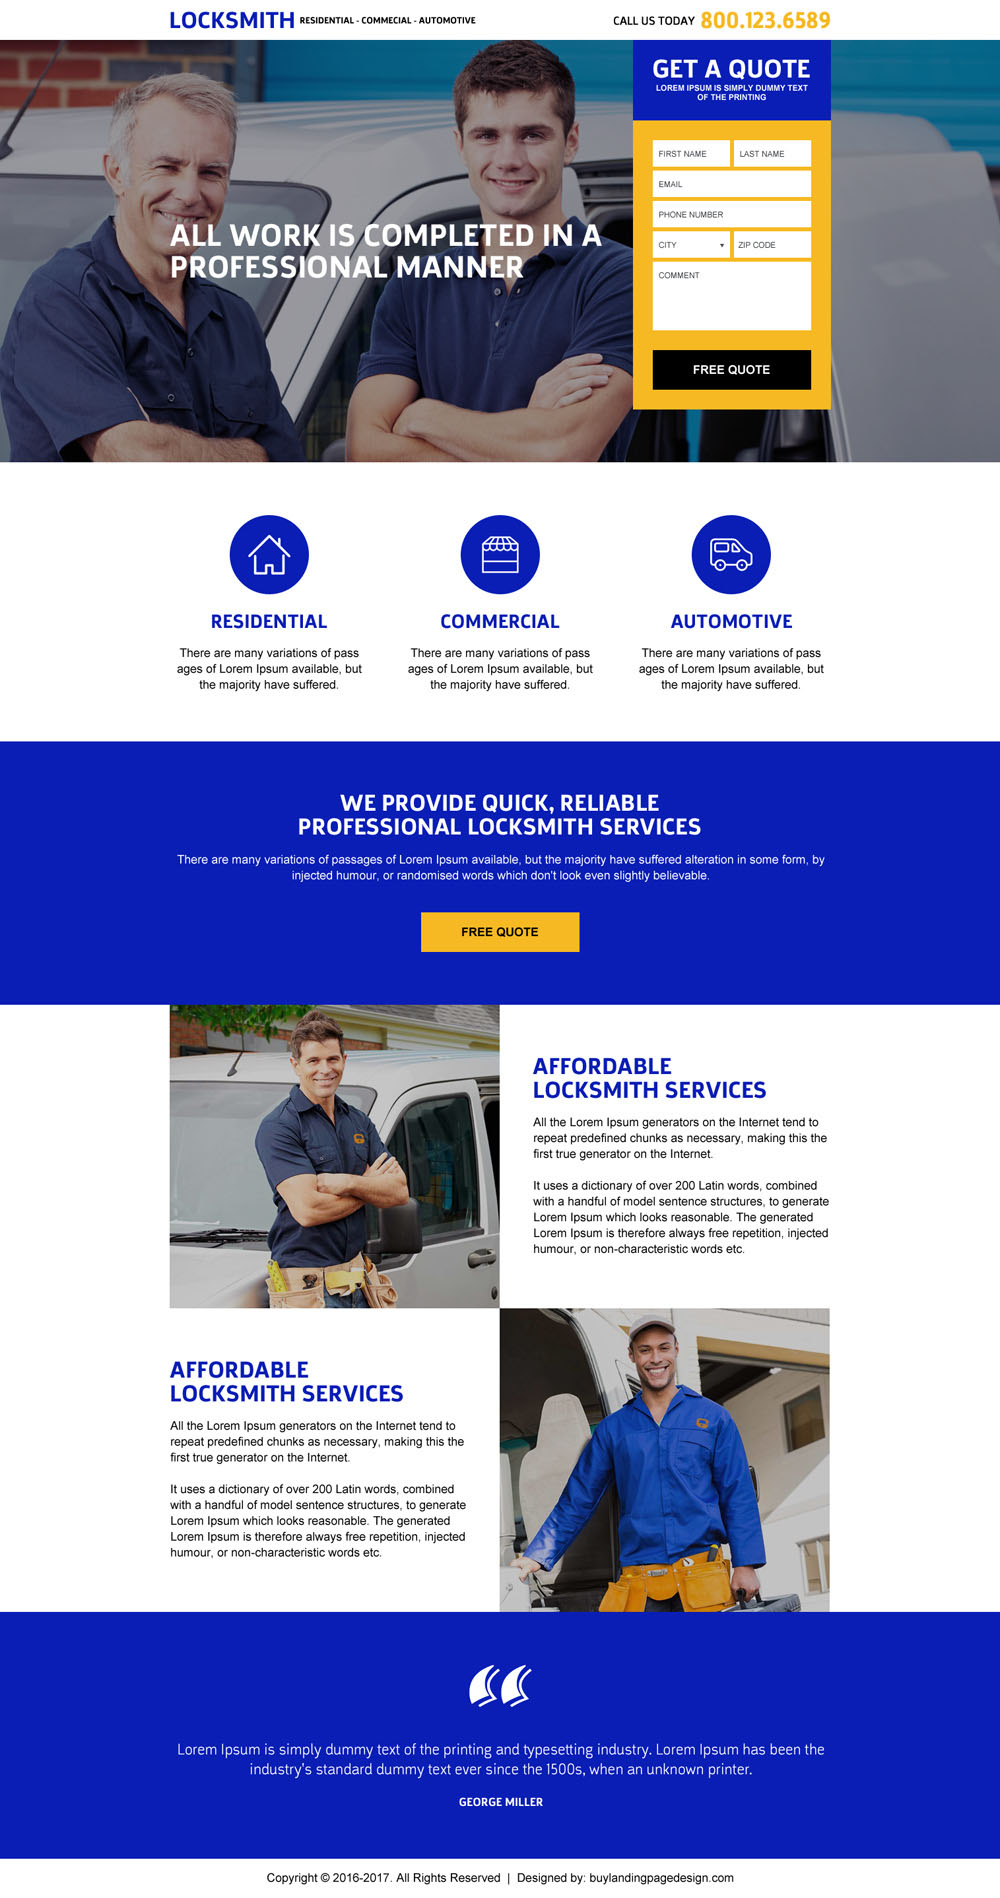 best-locksmith-service-free-quote-lead-generation-landing-page-design-011